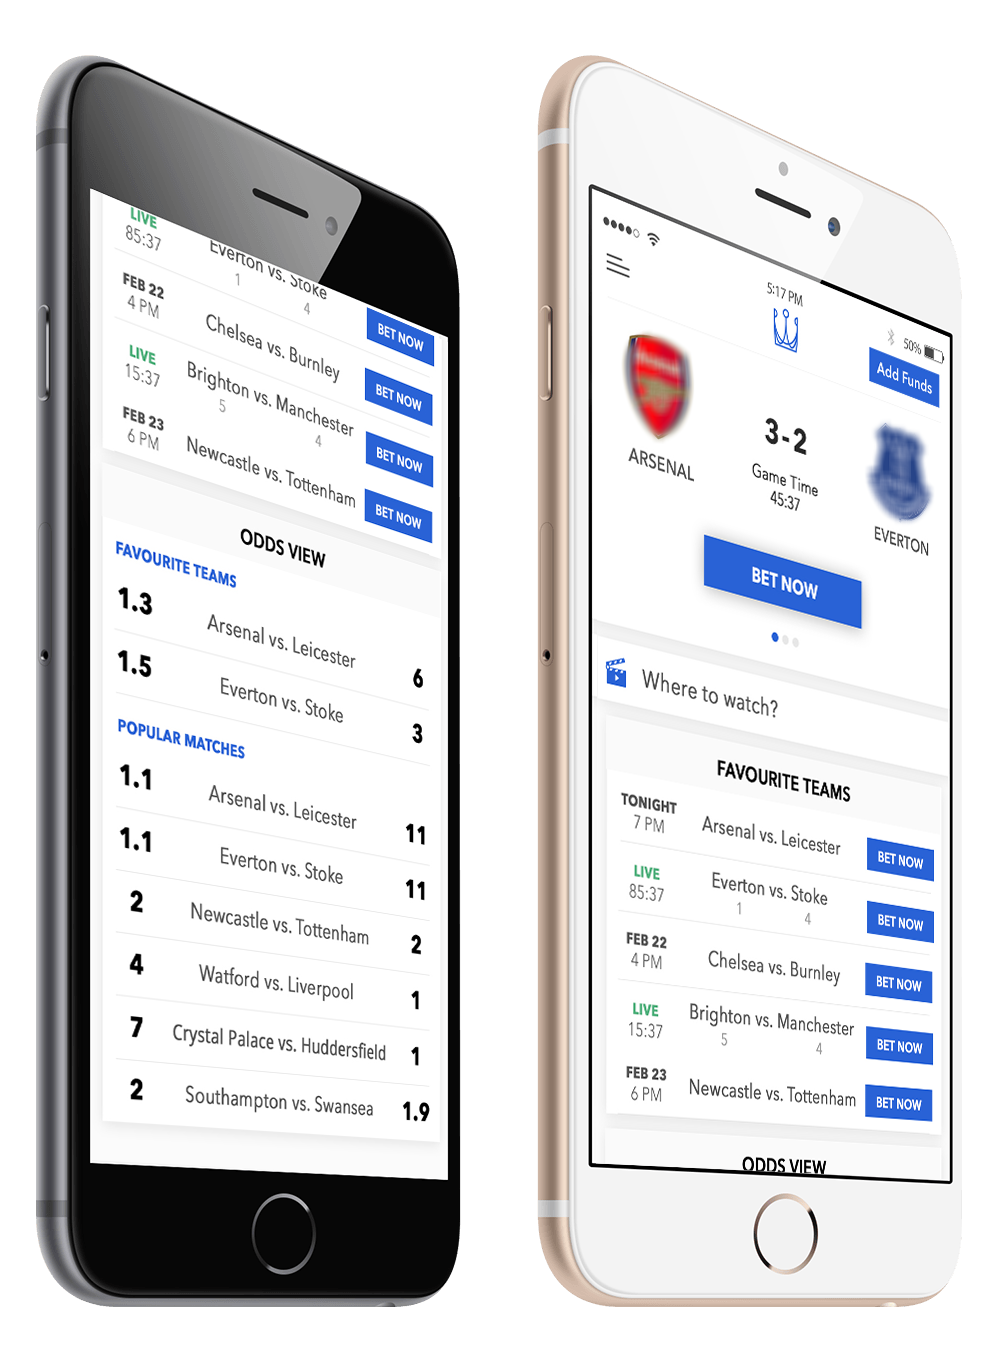 All your betting needs in one centralized app.